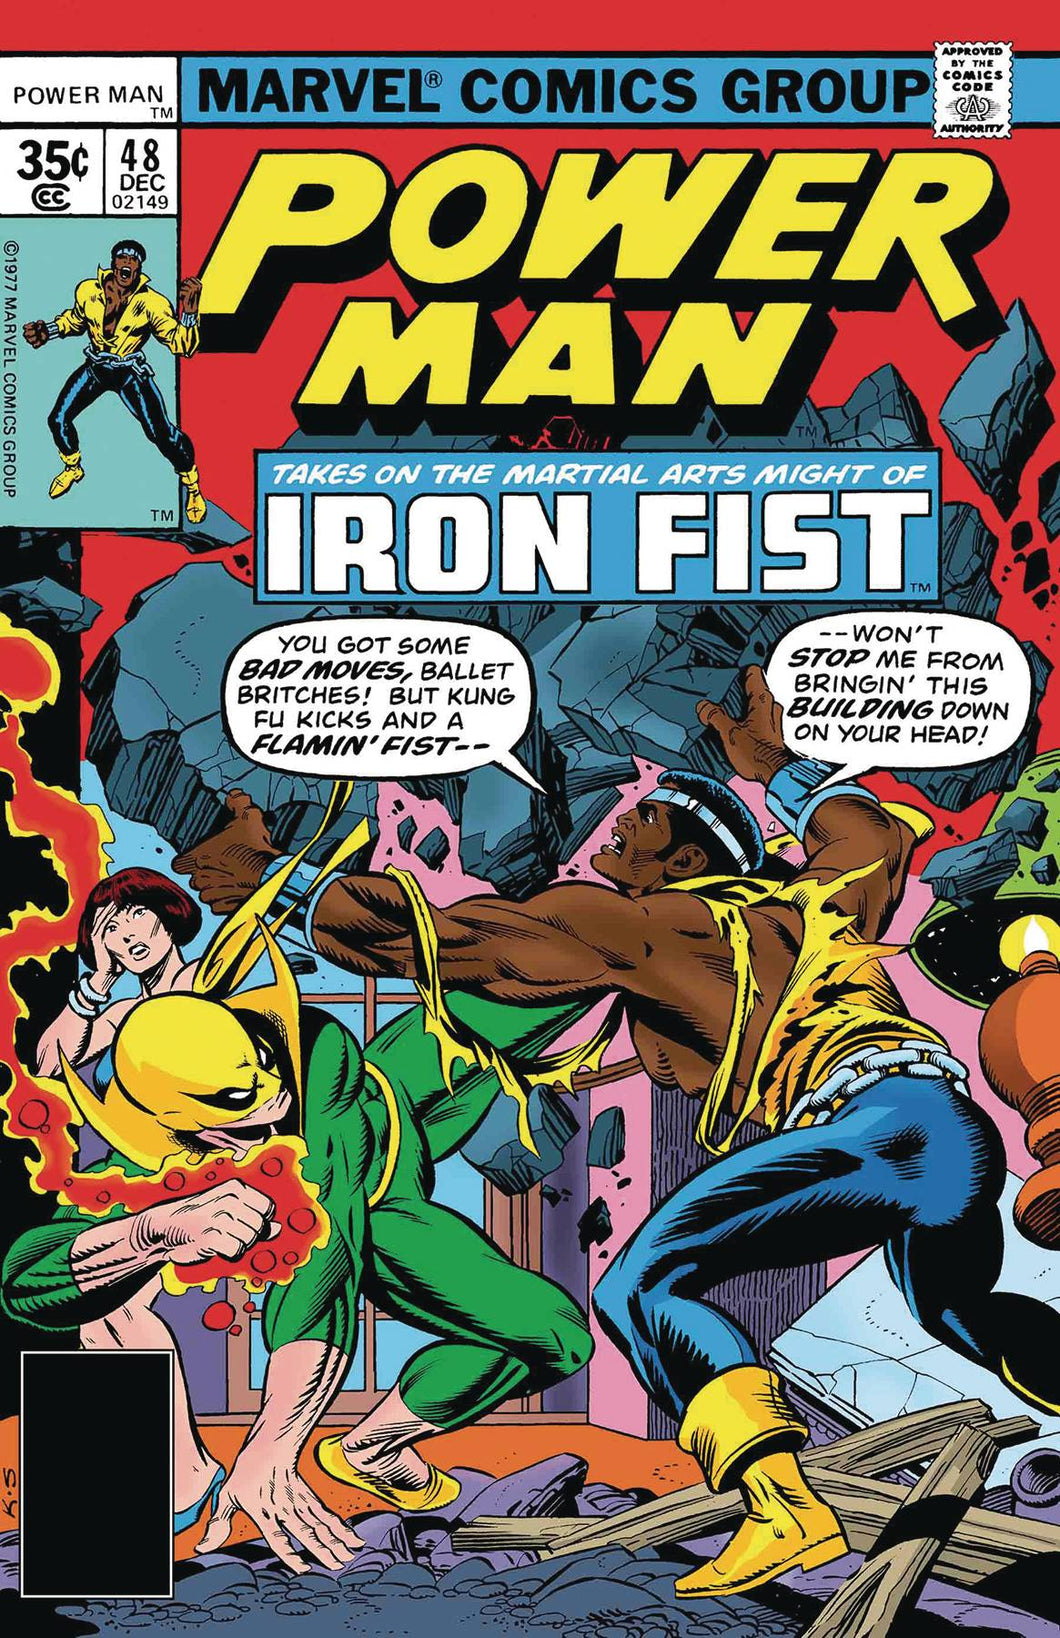 TRUE BELIEVERS POWER MAN AND IRON FIST #1 FOC 08/27